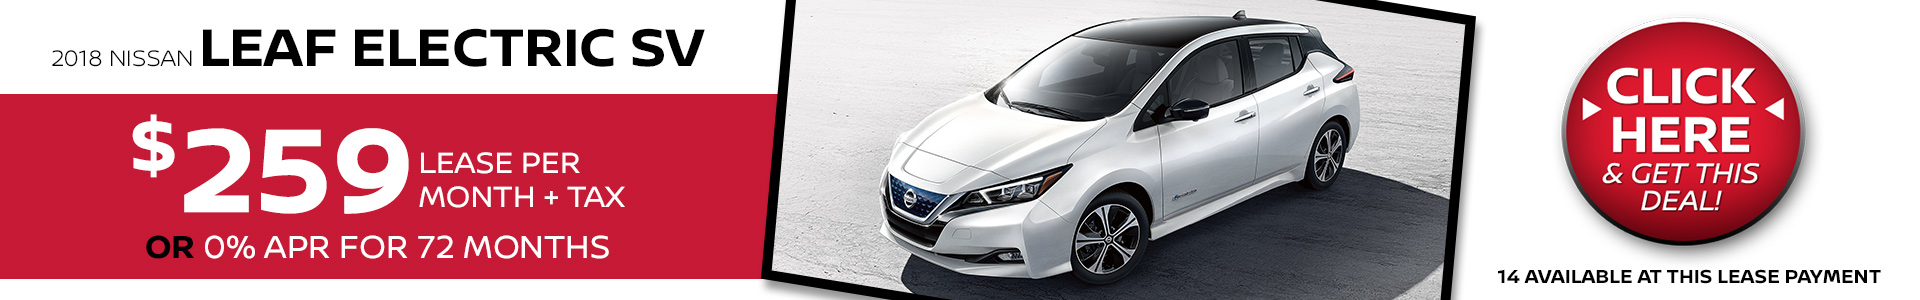 Nissan Leaf Electric $259 Lease